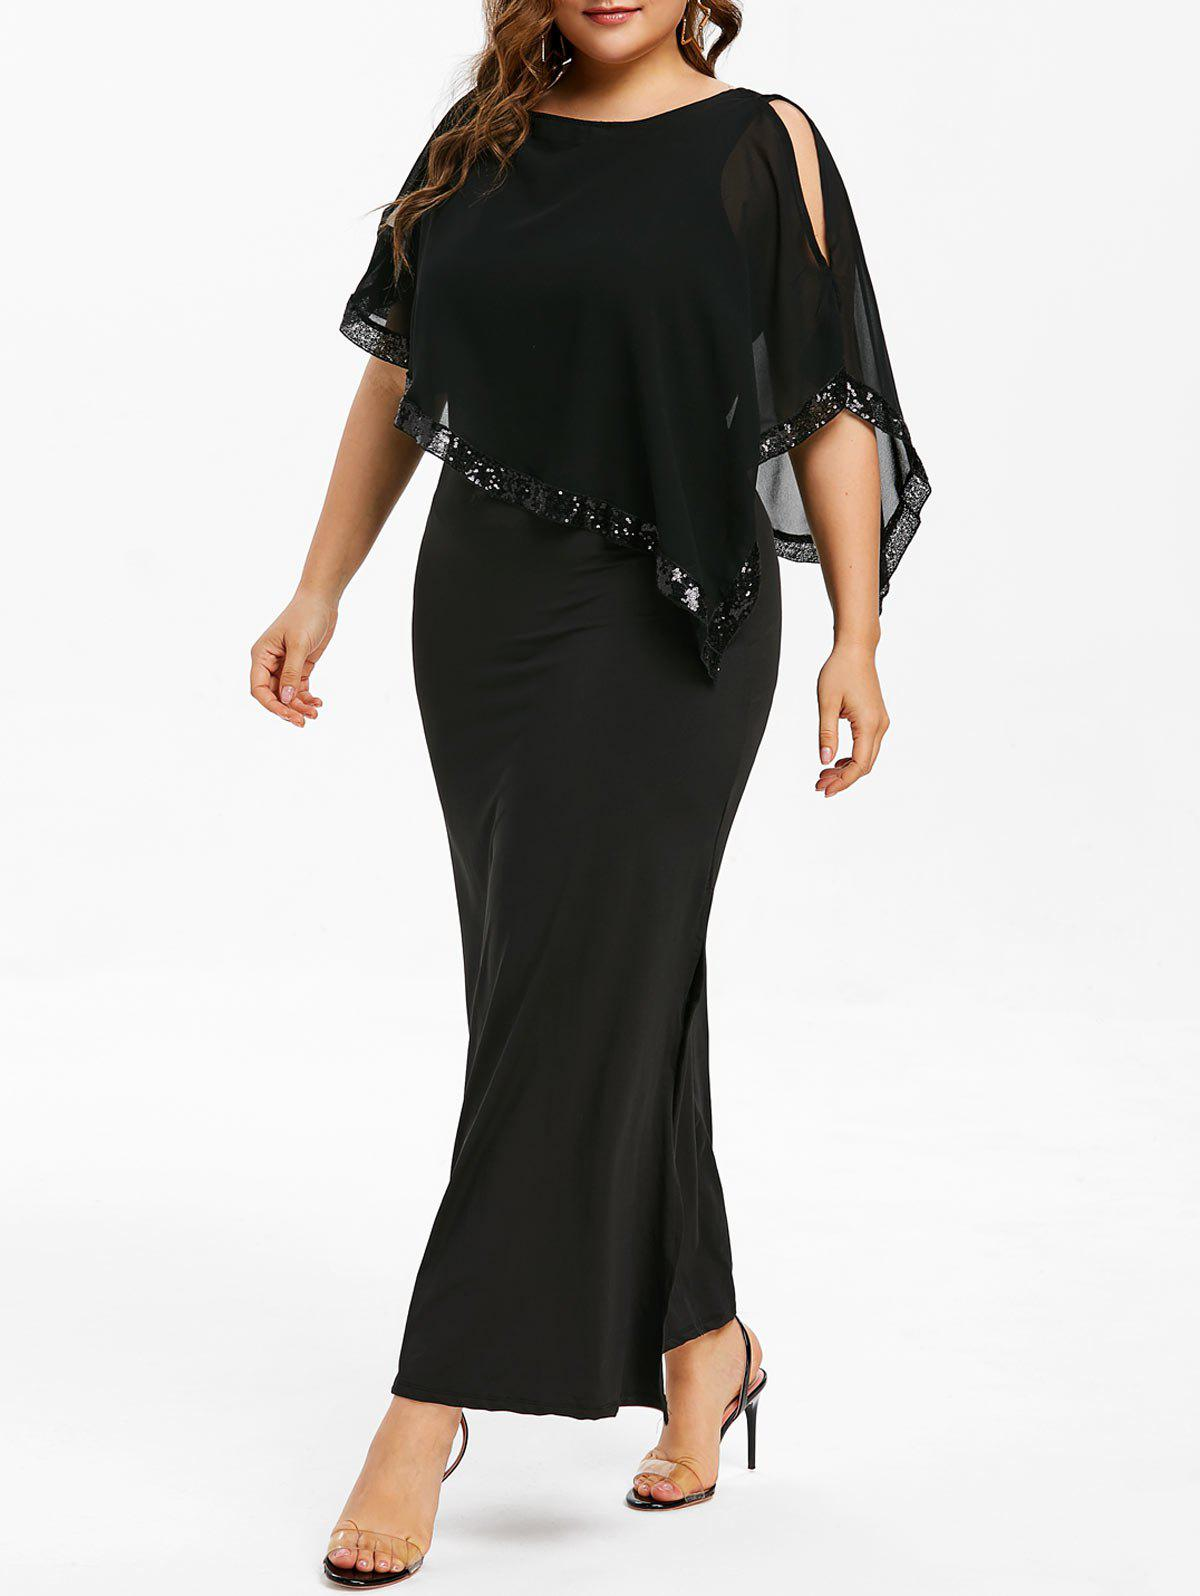 dbe86a683e1 30% OFF  Plus Size Sequin Embellished Overlay Maxi Dress